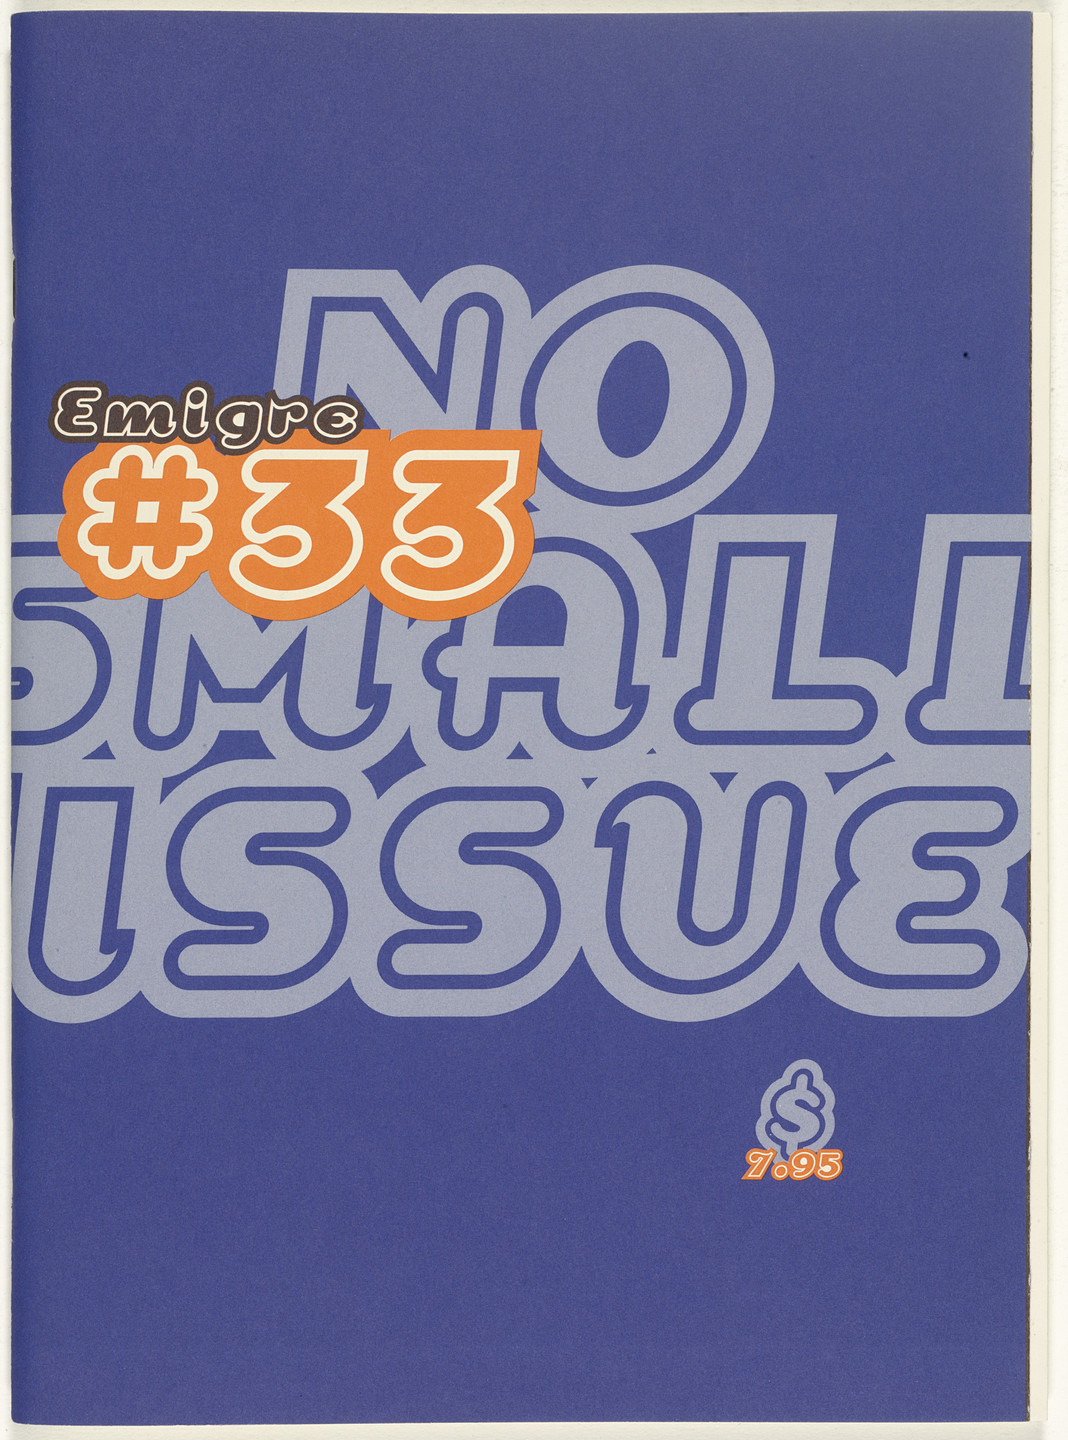 Emigre Inc., Rudy VanderLans, Zuzana Licko. Emigre 33, No Small Issue. 1995